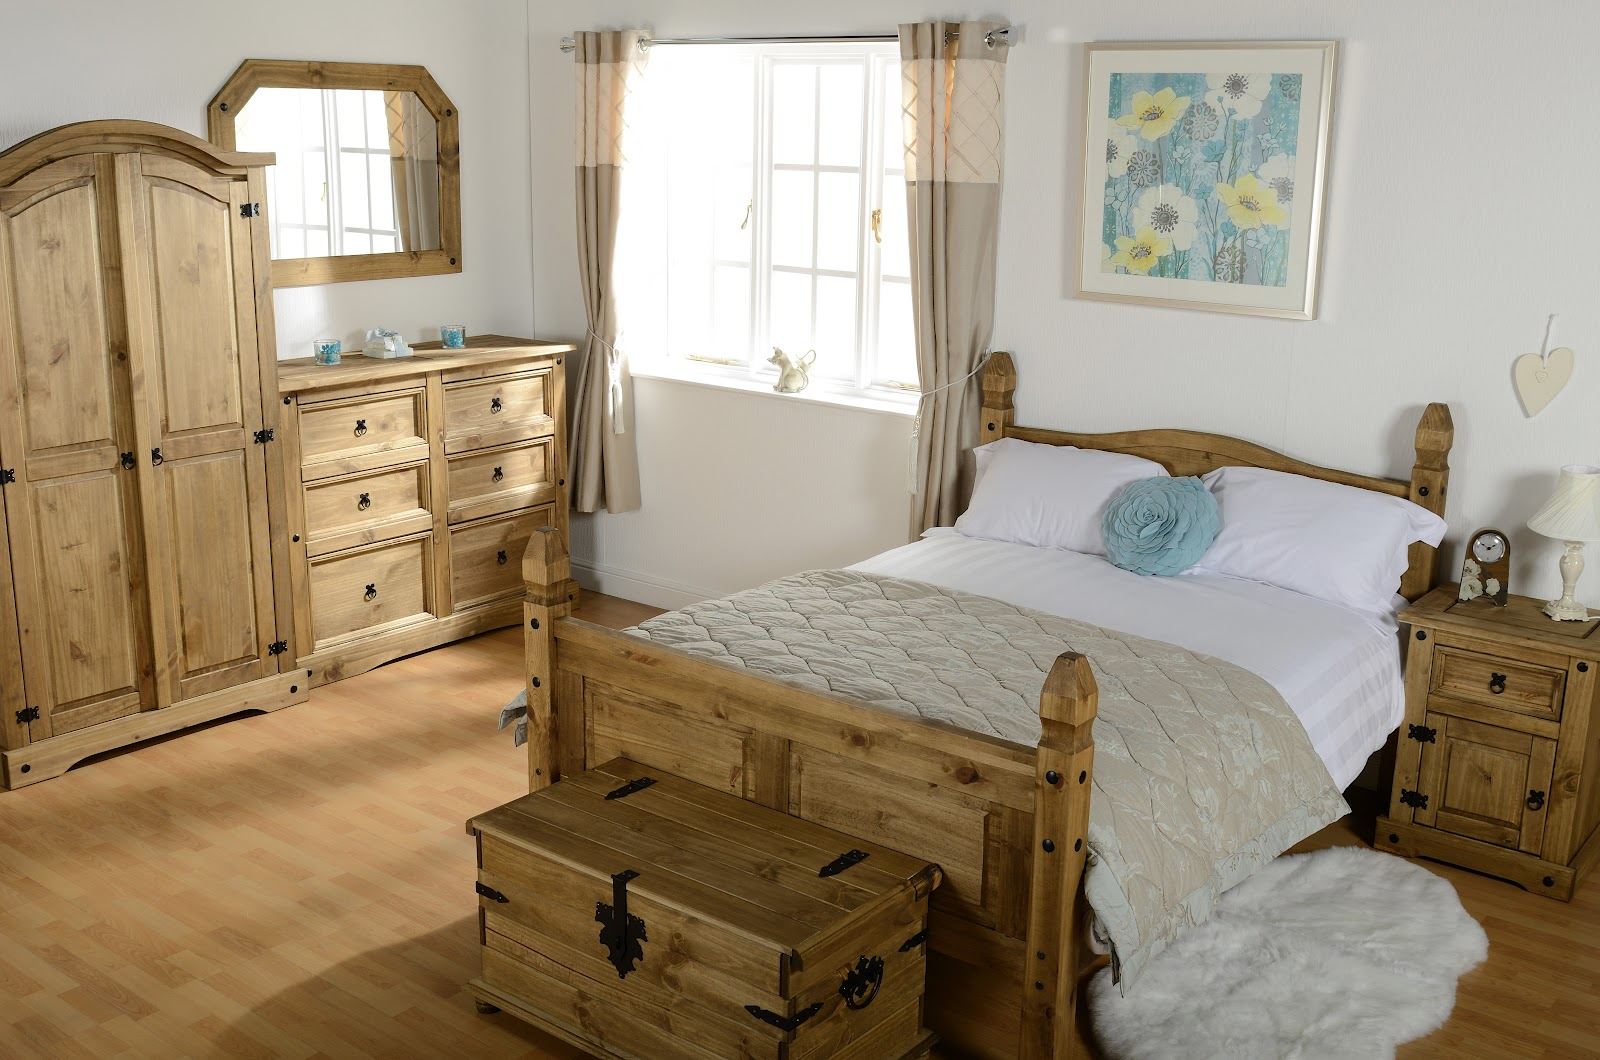 The Corona 2 Door Wardrobe, A 6 Drawer Chest With The Overmantel Mirror  Above, A Single Storage Chest, A 4ft6 Corona Double Bed, And A Bedside.